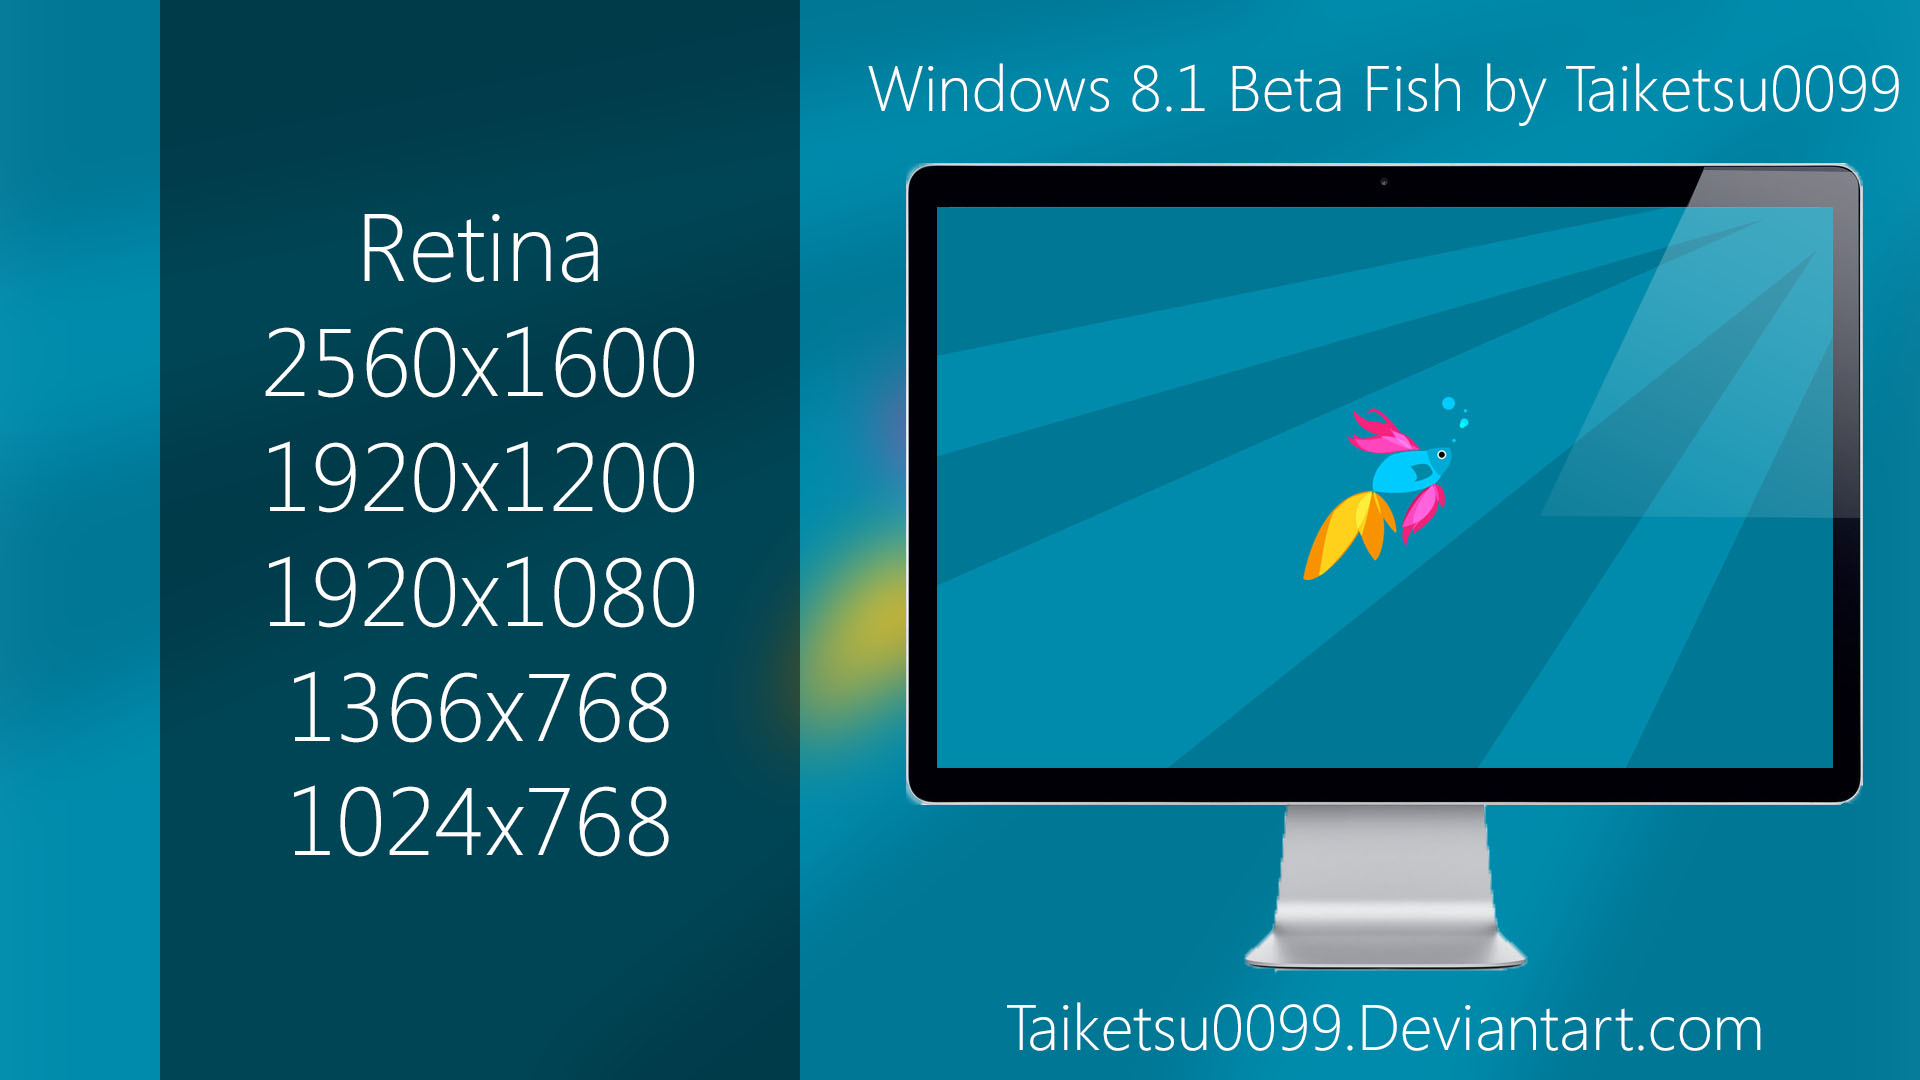 Windows 8.1 Beta Fish by Taiketsu0099 by Taiketsu0099